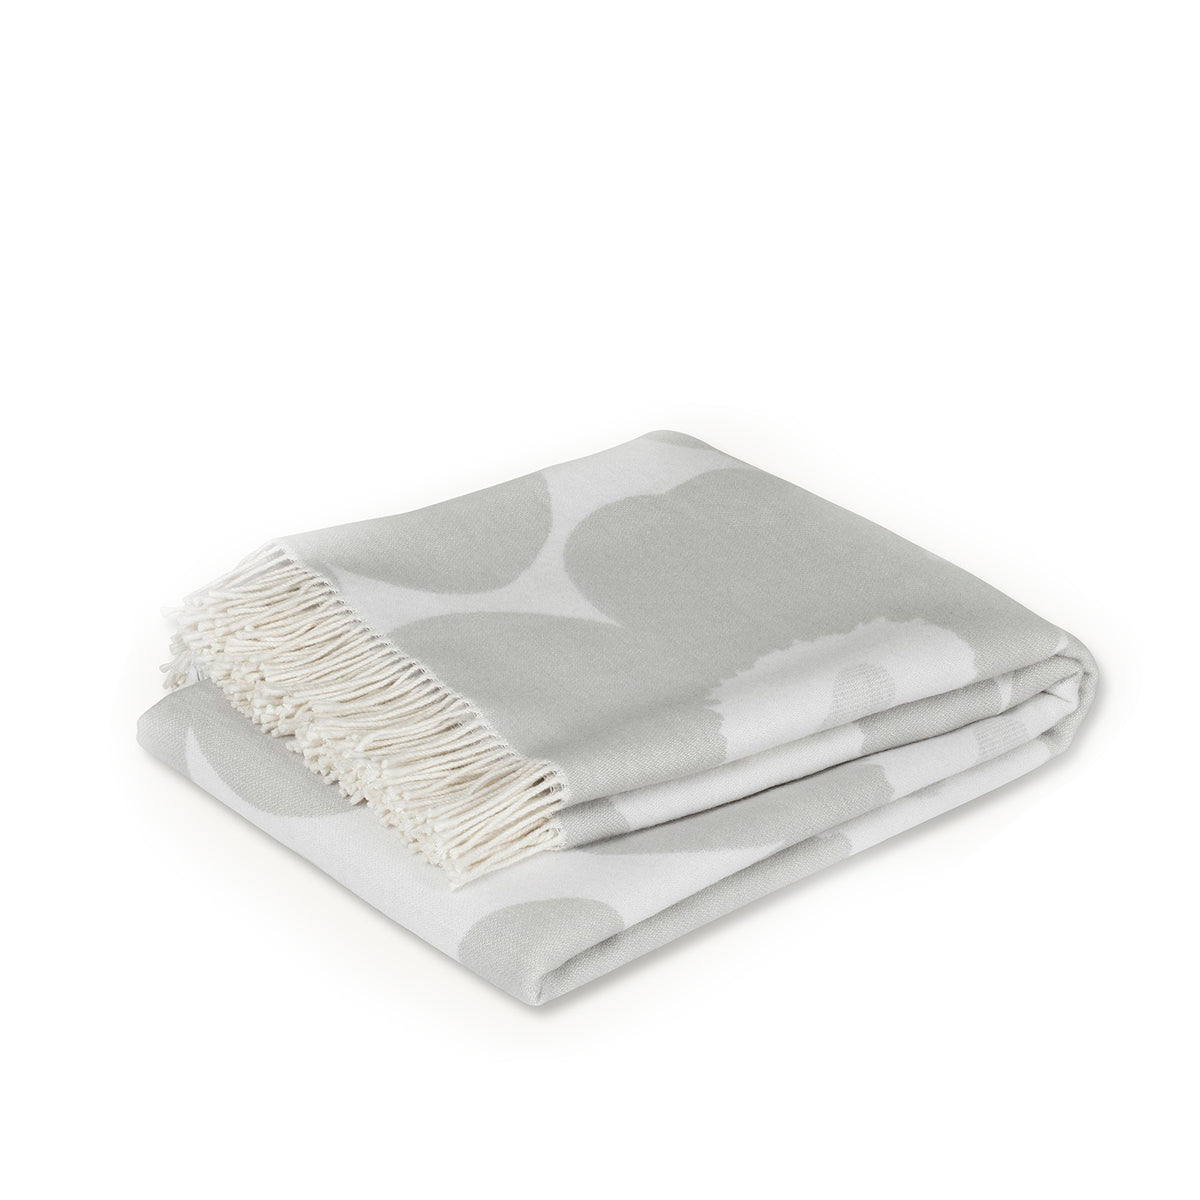 Unikko Blanket White / Light Grey